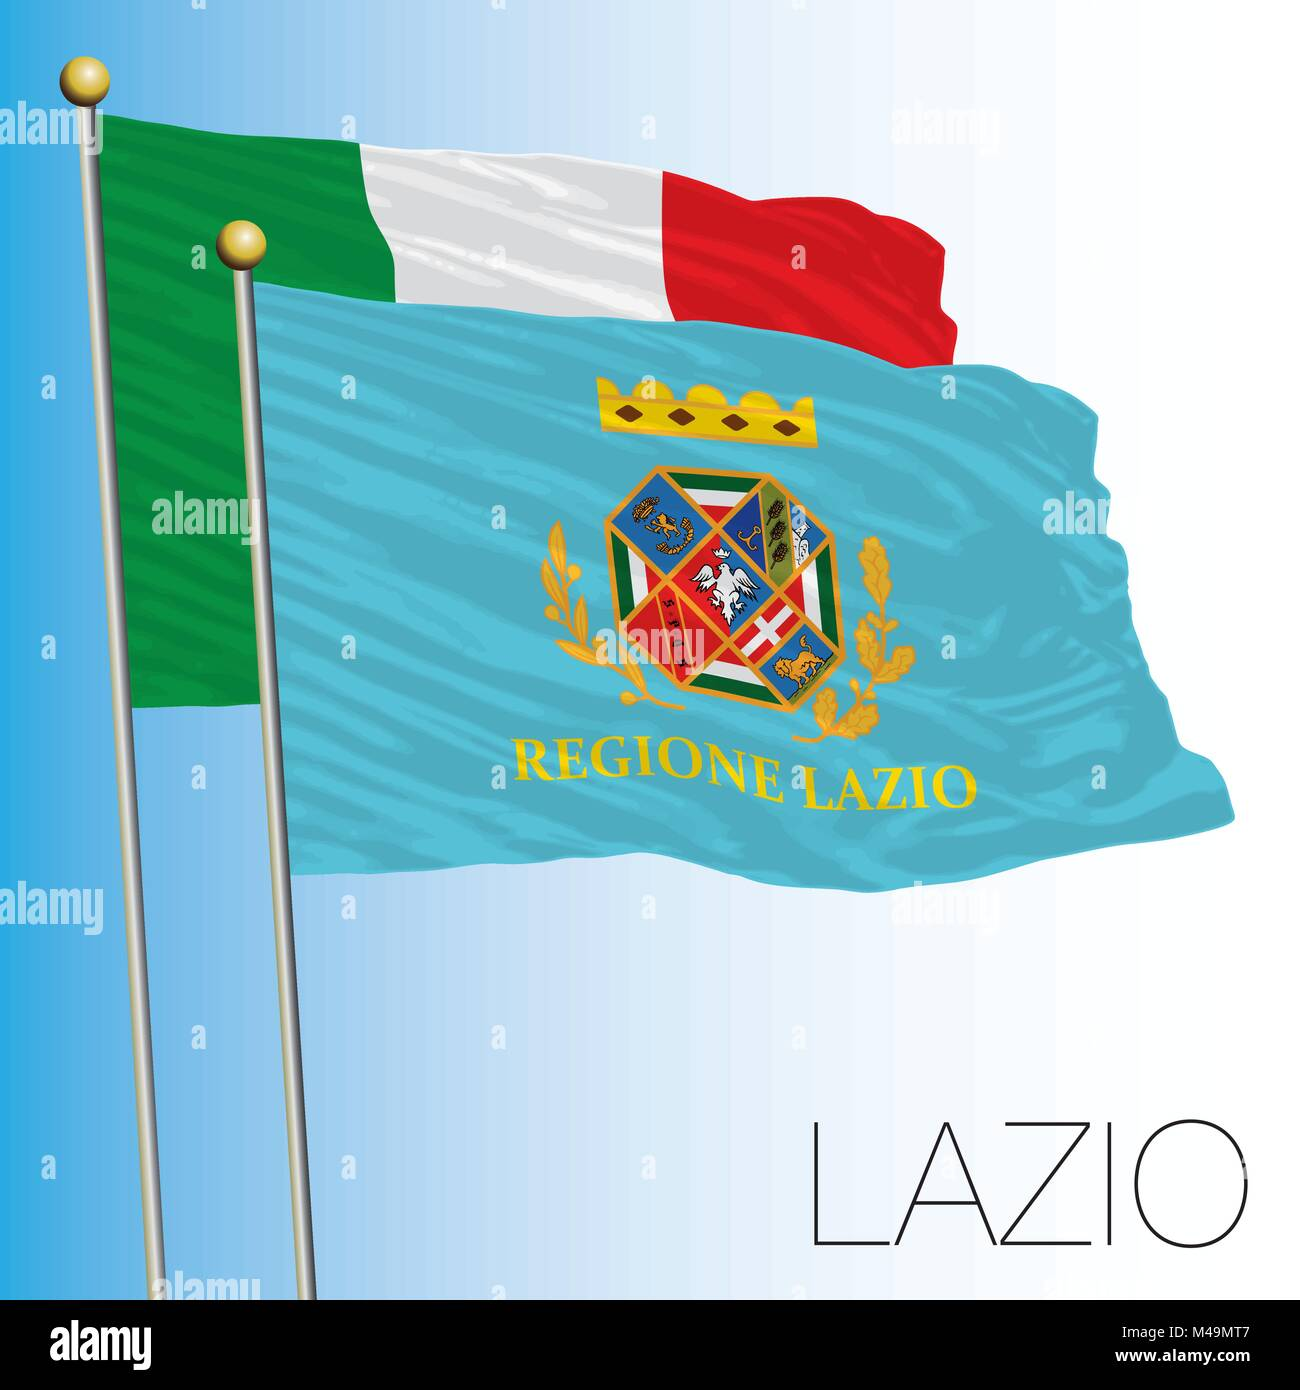 Lazio regional flag, Italian Republic, Italy, European Union - Stock Vector